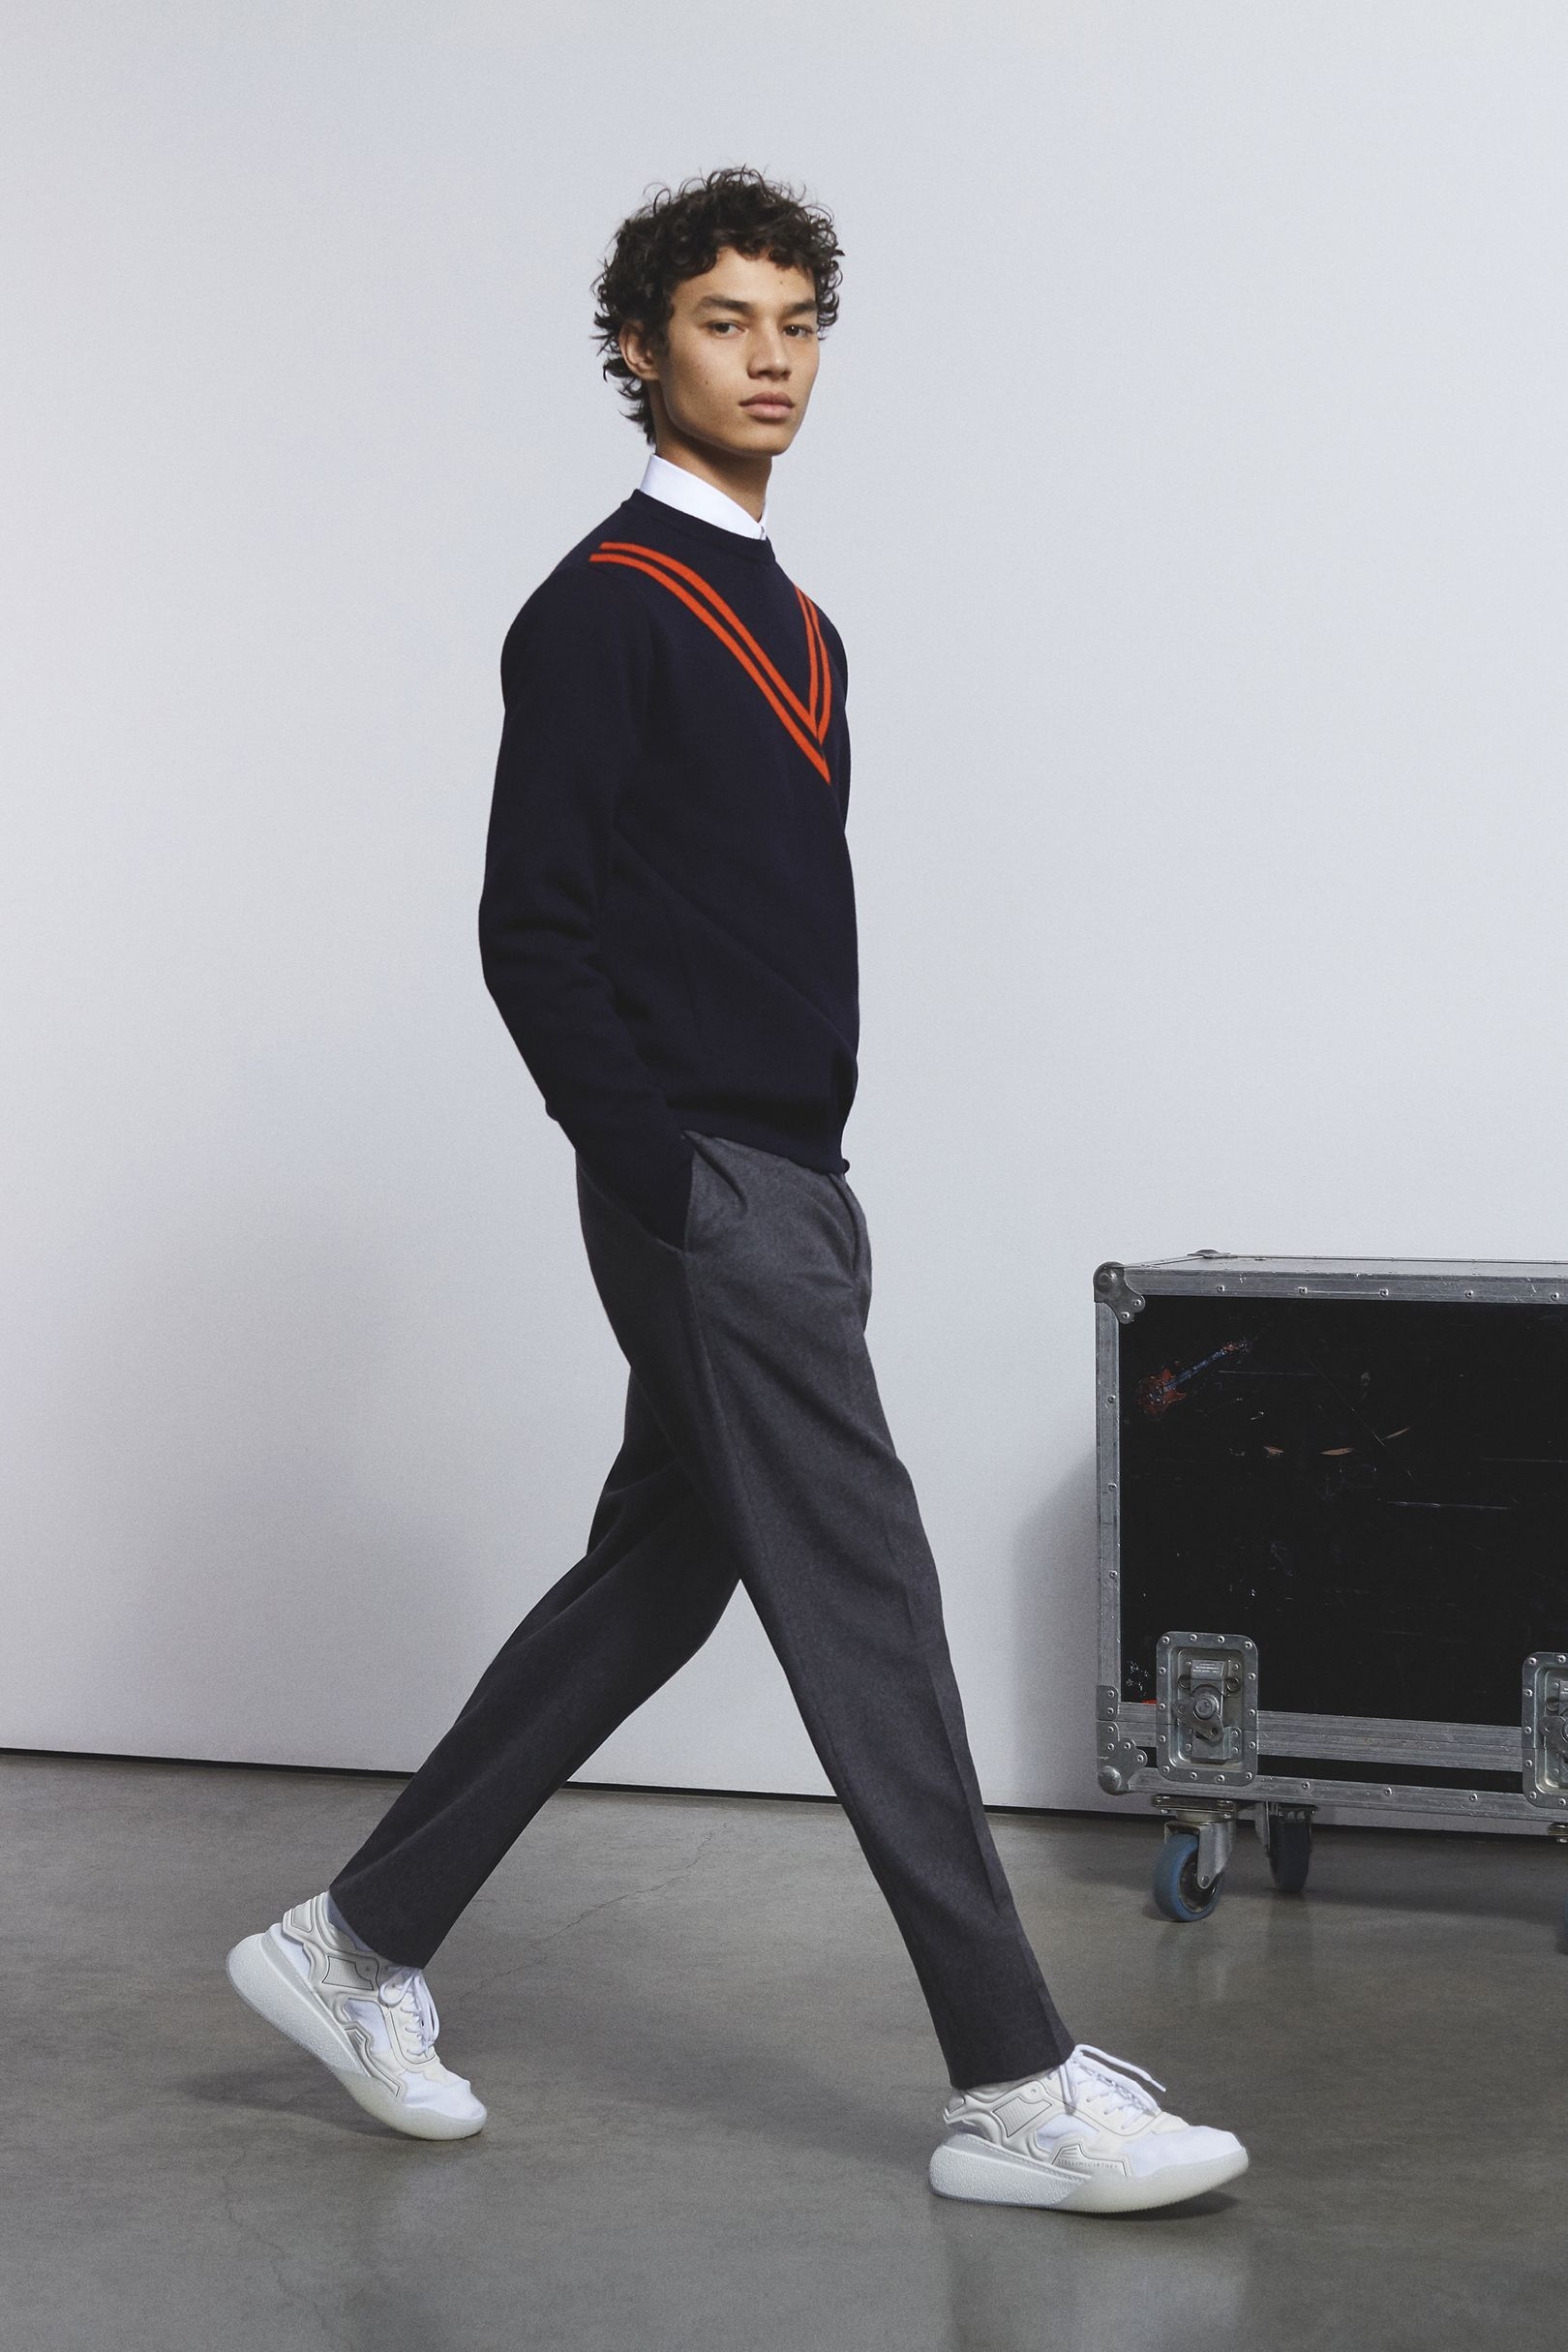 Stella mccartney autumnwinter menswear out fit inspo